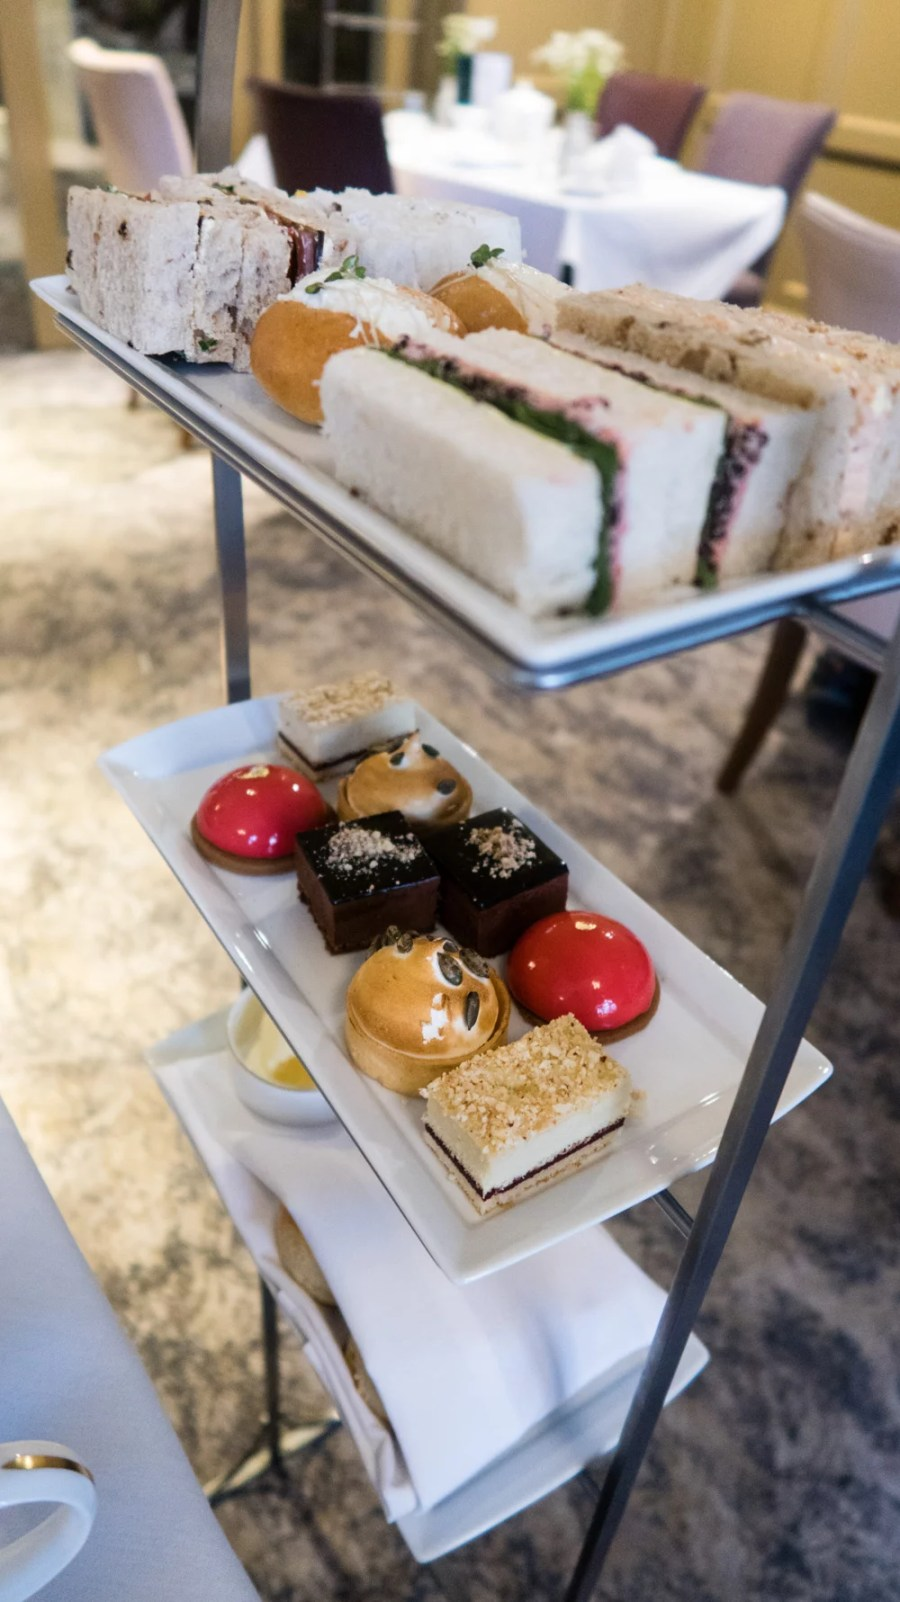 Afternoon tea stand at the Midland hotel